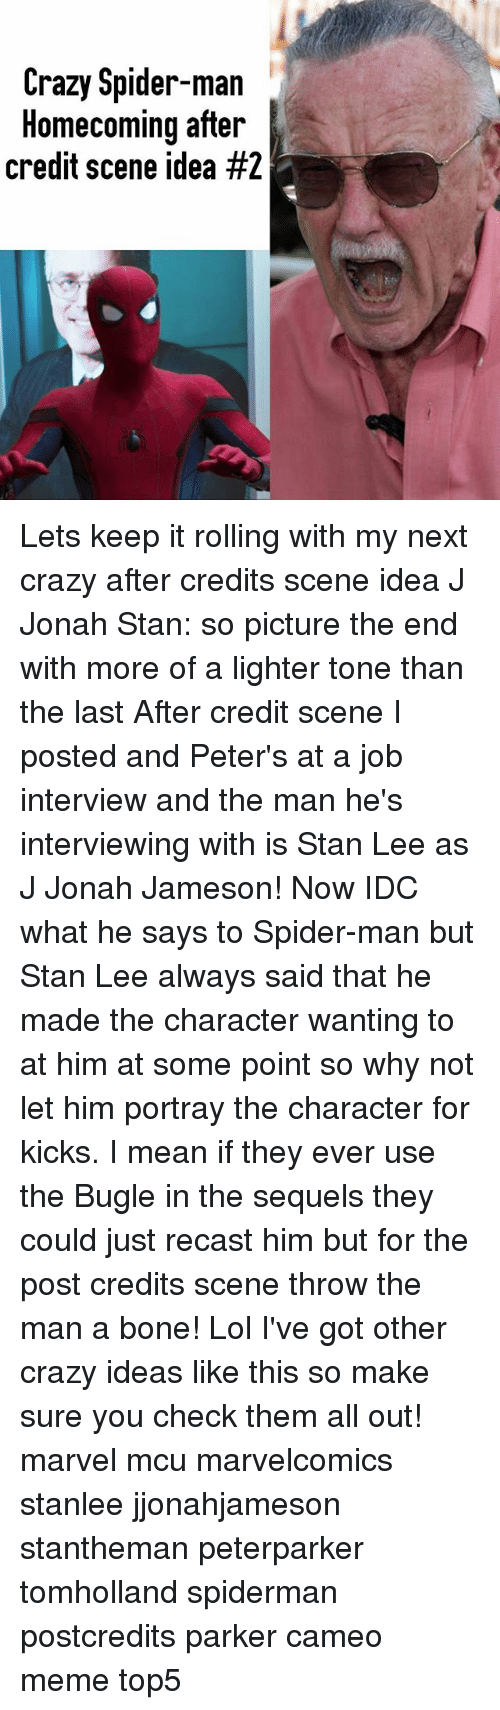 Man Buts: Crazy Spider-man  Homecoming after  credit scene idea Lets keep it rolling with my next crazy after credits scene idea J Jonah Stan: so picture the end with more of a lighter tone than the last After credit scene I posted and Peter's at a job interview and the man he's interviewing with is Stan Lee as J Jonah Jameson! Now IDC what he says to Spider-man but Stan Lee always said that he made the character wanting to at him at some point so why not let him portray the character for kicks. I mean if they ever use the Bugle in the sequels they could just recast him but for the post credits scene throw the man a bone! Lol I've got other crazy ideas like this so make sure you check them all out! marvel mcu marvelcomics stanlee jjonahjameson stantheman peterparker tomholland spiderman postcredits parker cameo meme top5